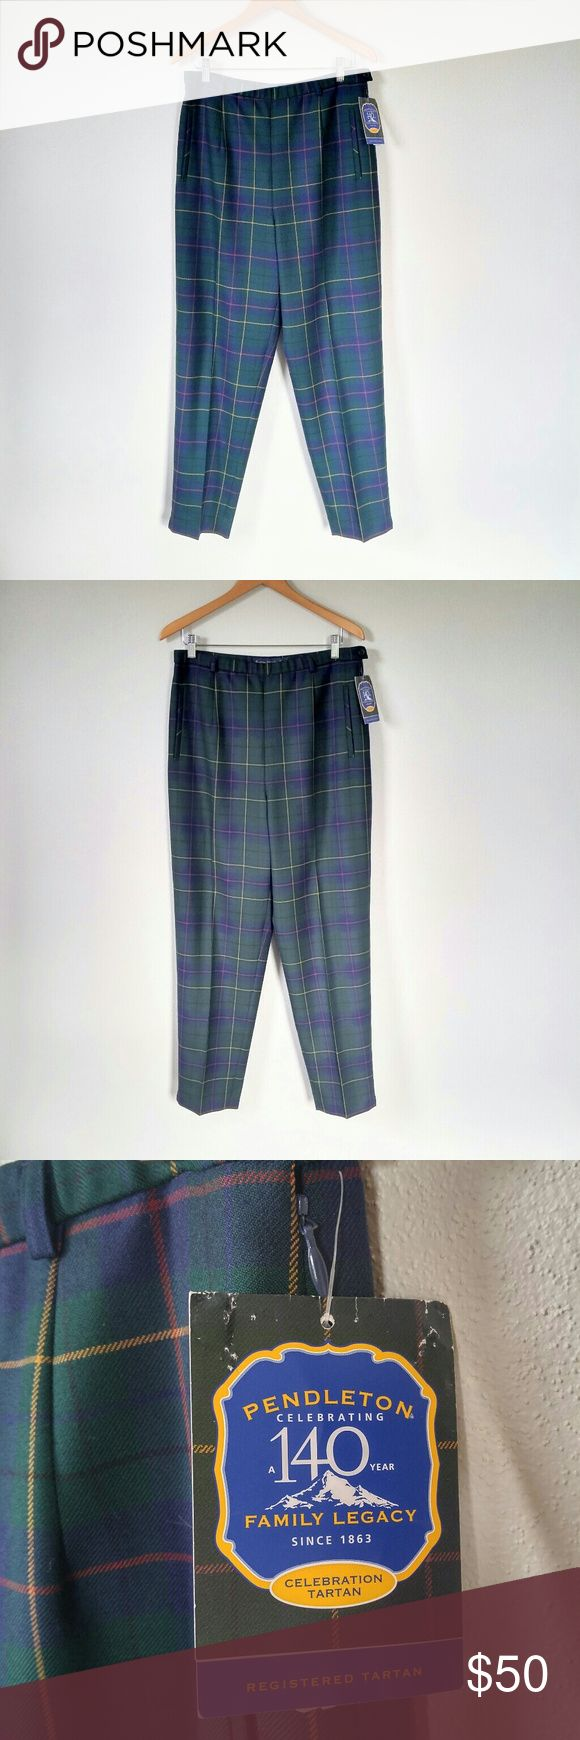 """Pendleton Plaid Wool Ladies Trousers These are too fun! New with tags, these are begging to be your leg buddies for spring while we wait out the last of the cold. High-waisted style, tapered leg.   - Size 14 -16"""" across waistband -14"""" rise -31"""" inseam - A few loose thread sticking out of seam in back, easy to trim, there is no damage on seam Pants Trousers"""